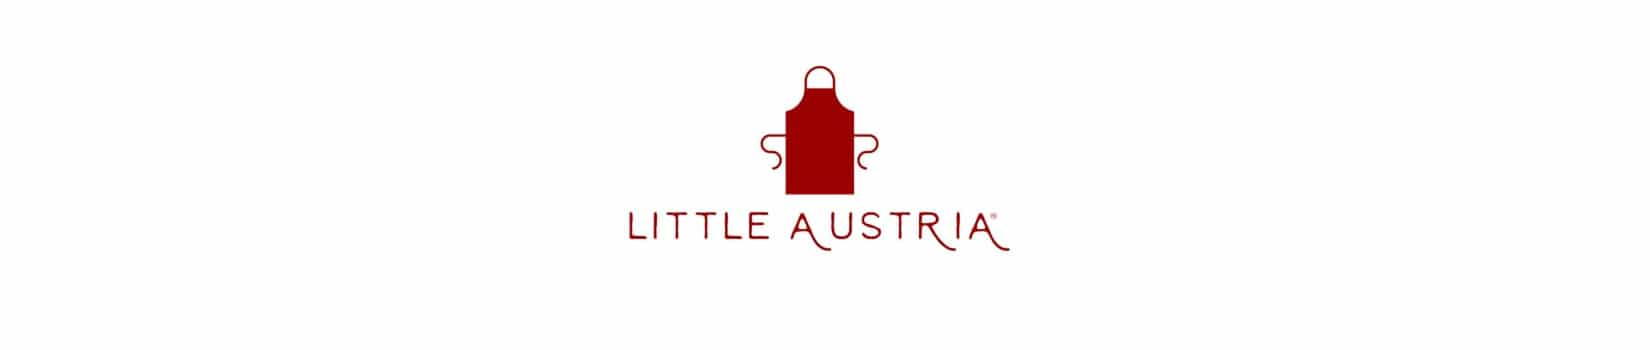 Little Austria